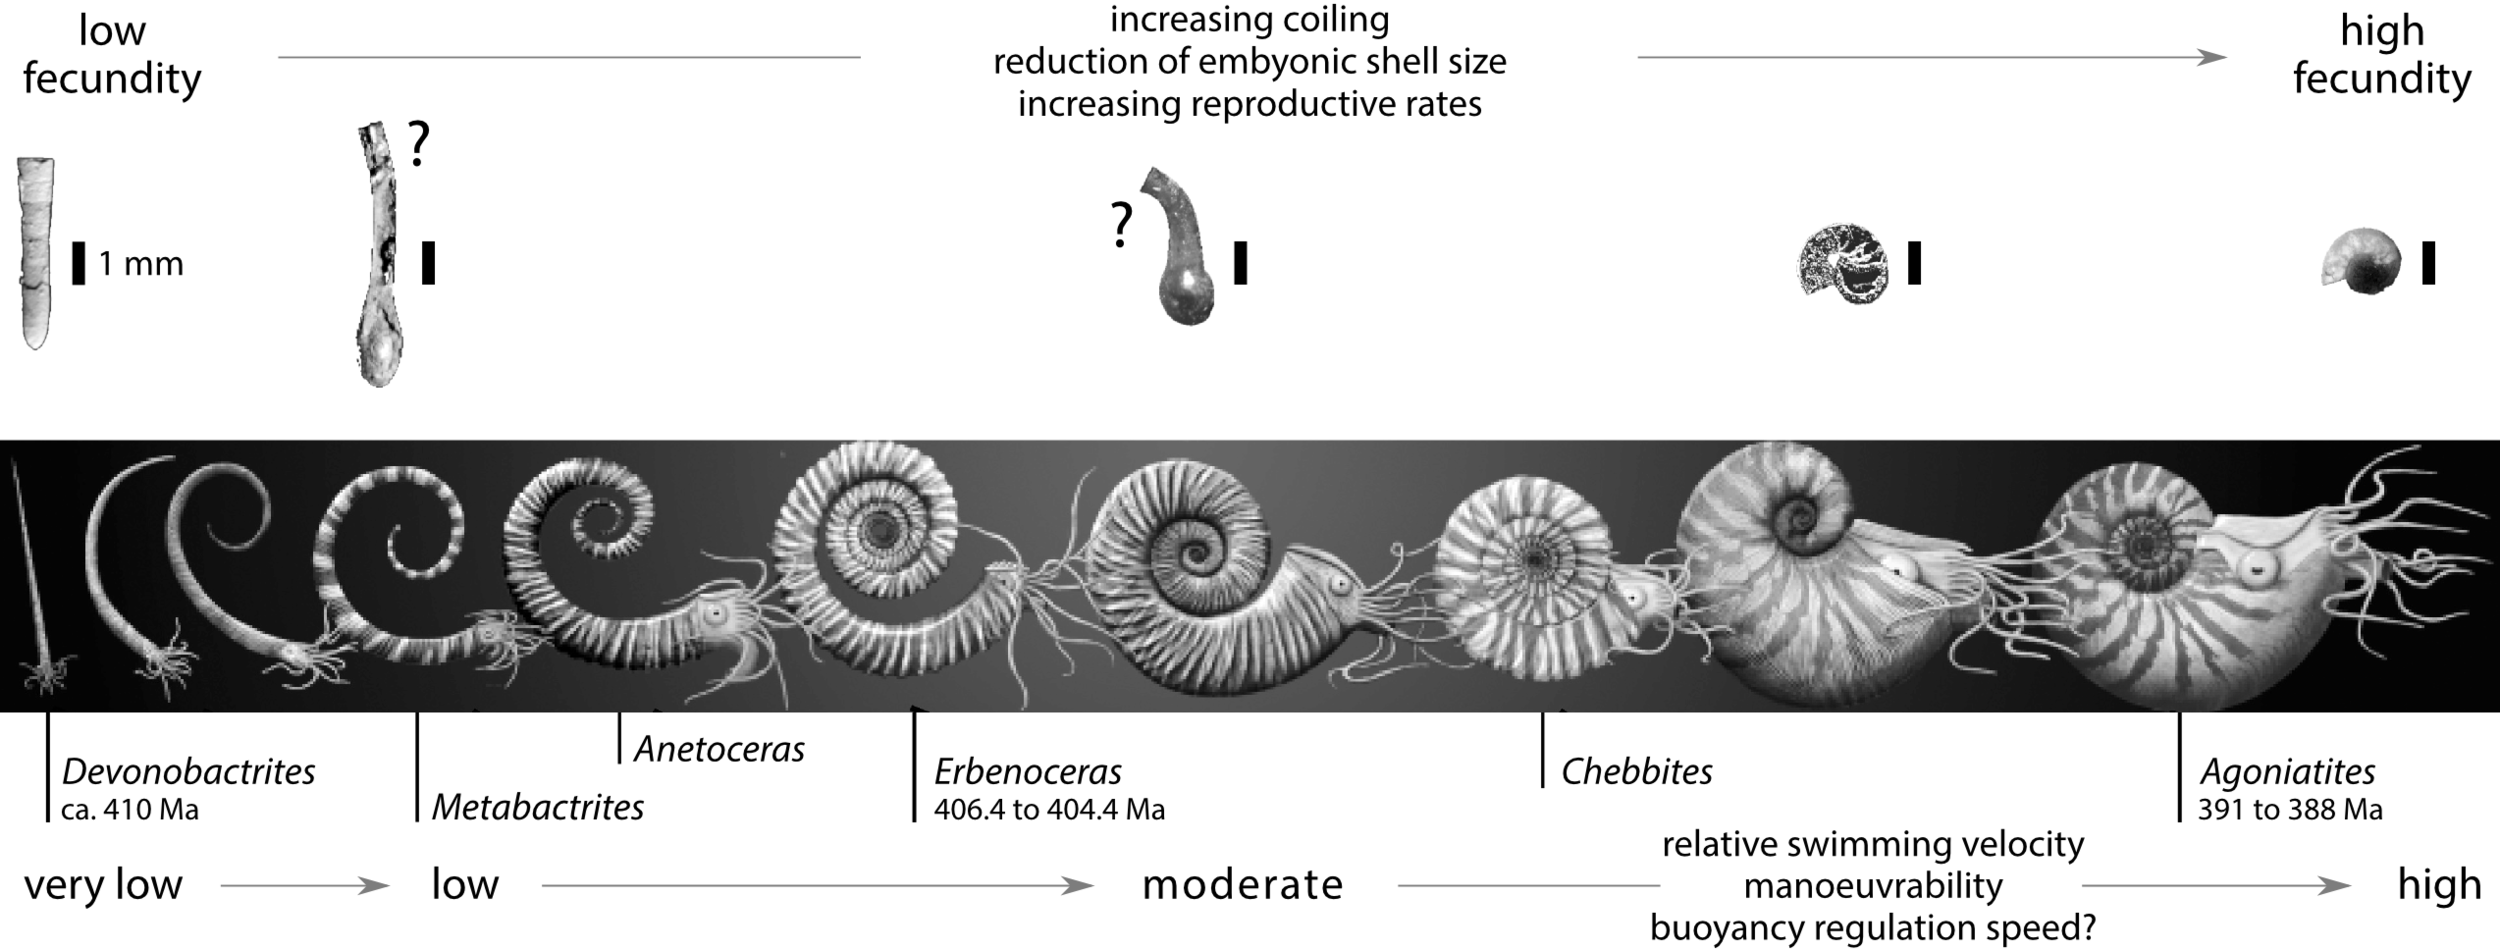 Evolutionary changes around the transition from Bactritida to Ammonoidea including (top to bottom) fecundity,embryonic shell, adult shell shape, and other attributes.